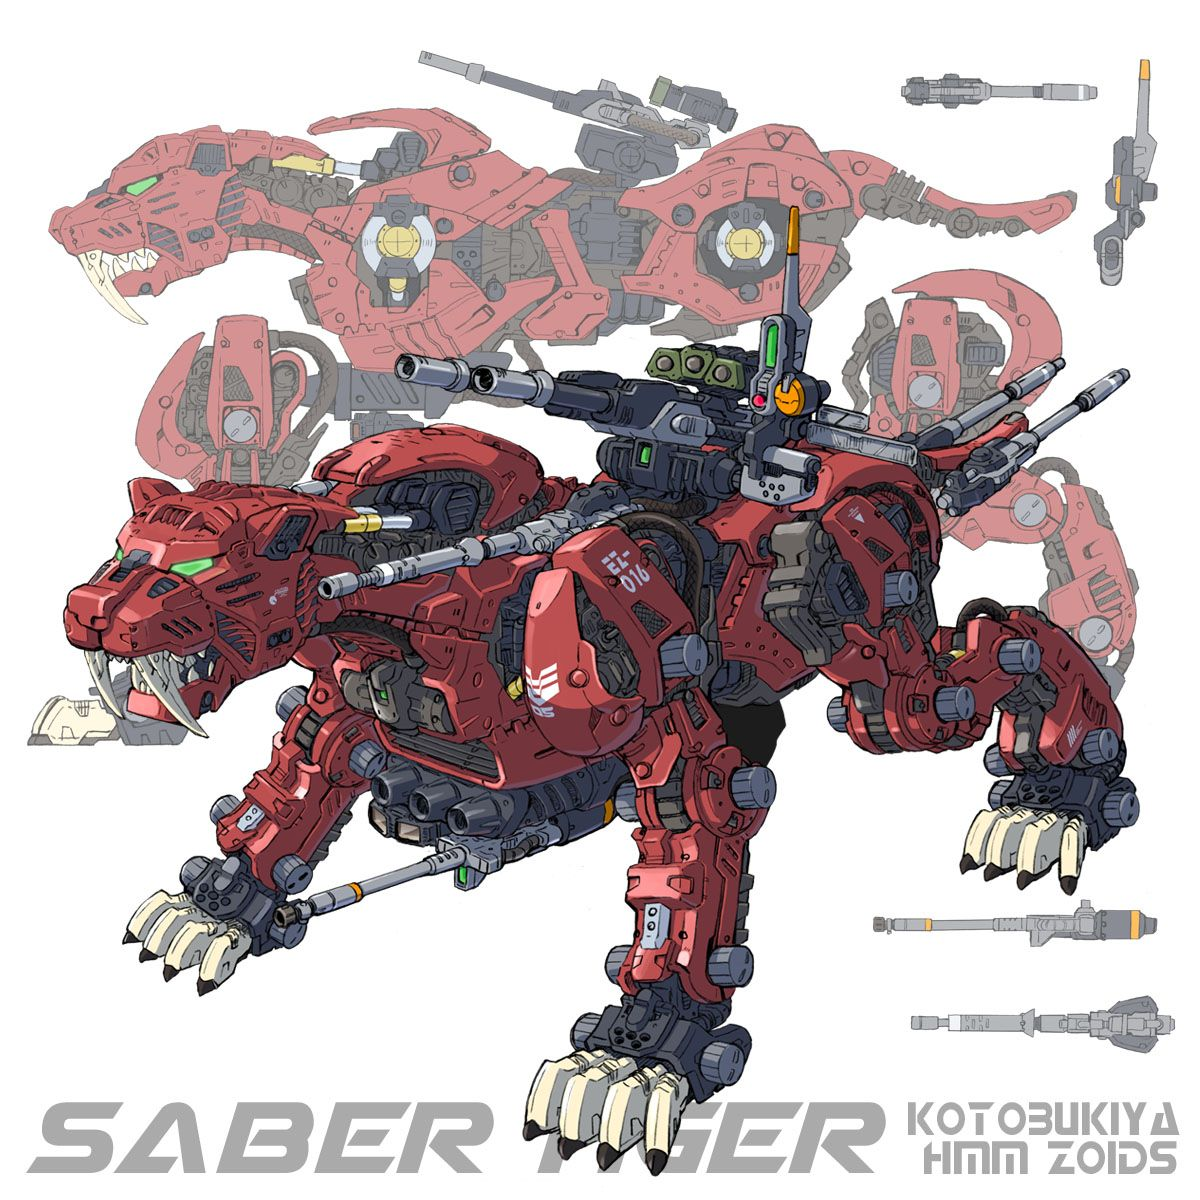 Kotobukiya Highend Master Model: Saber Tiger instruction booklet illustration